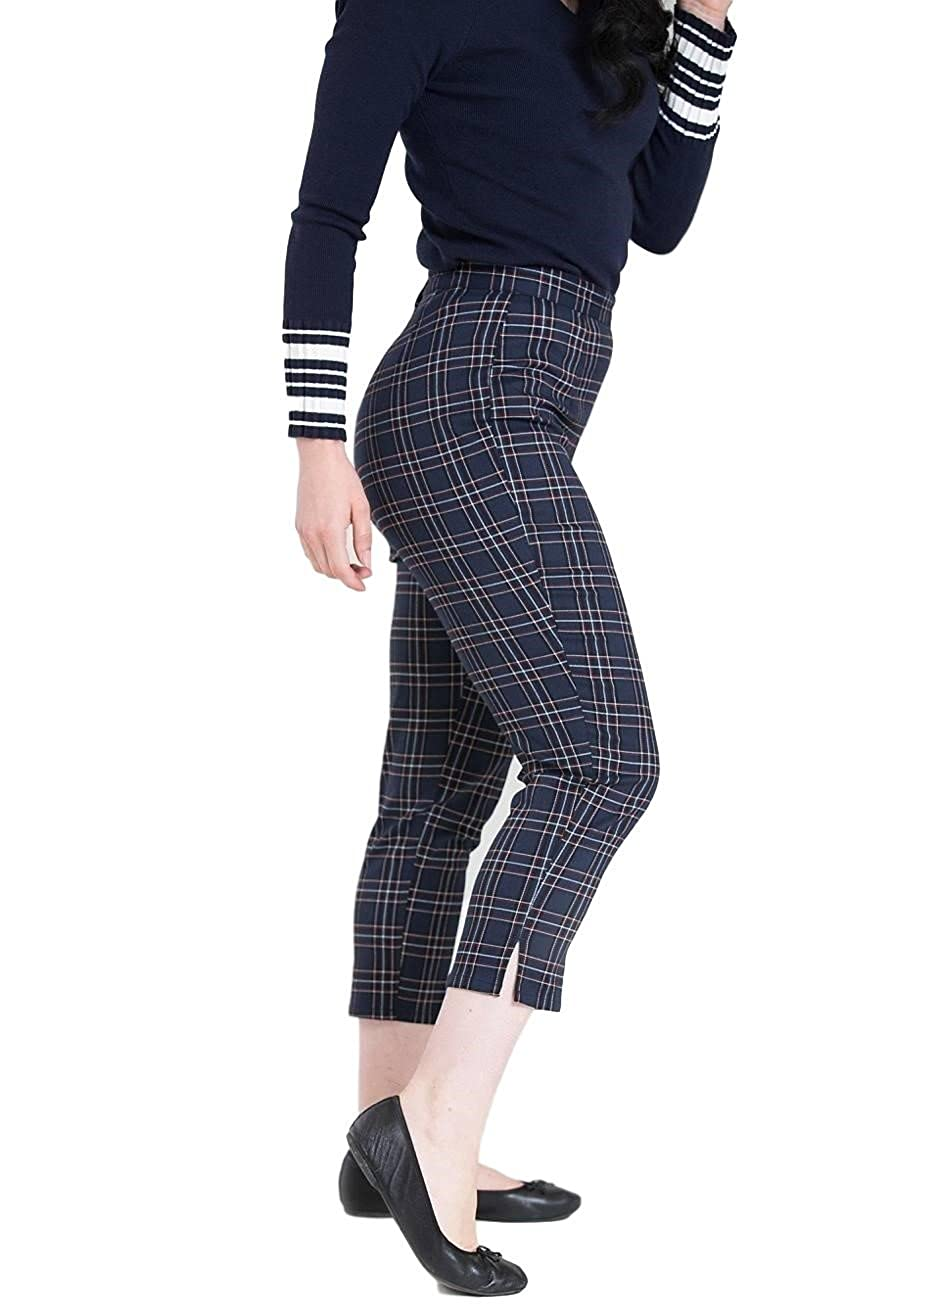 1950s Pants & Jeans- High Waist, Wide Leg, Capri, Pedal Pushers Hell Bunny Peebles 50s Cigarette Capri Cropped Trousers Retro Vintage Tartan $39.99 AT vintagedancer.com